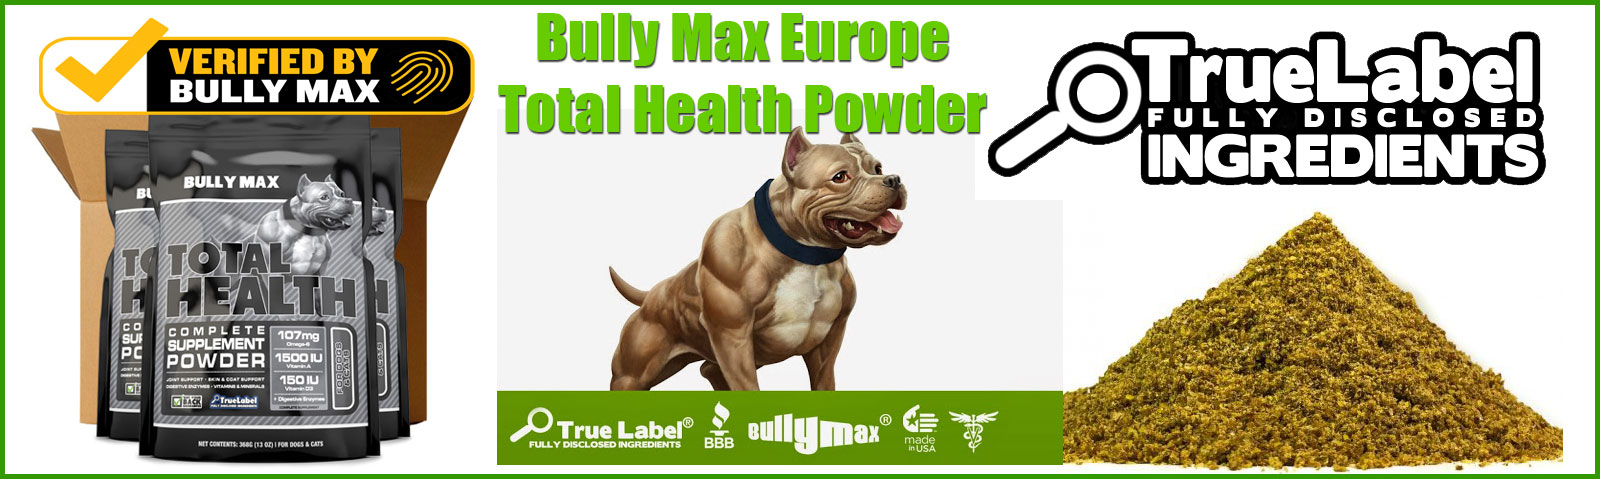 Bully Max Total Health Powder Europe